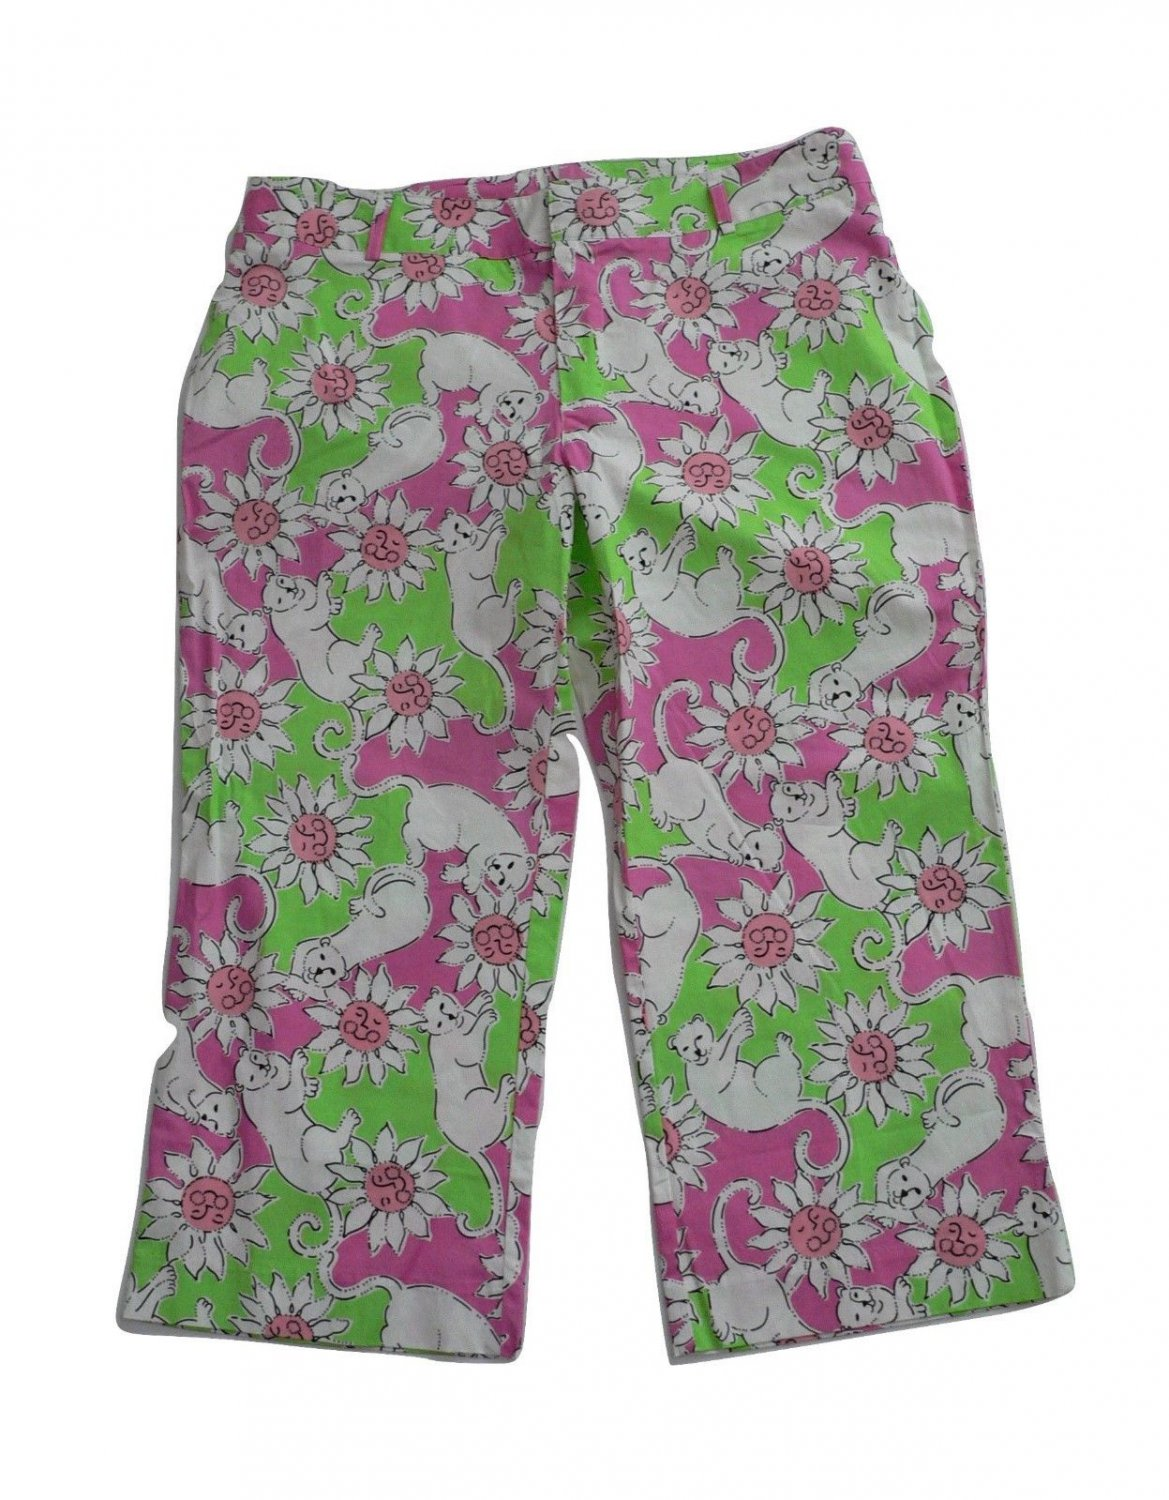 NWT LILLY PULITZER capris pants 6 cropped $160 Hibiscus pink,lime,daisies